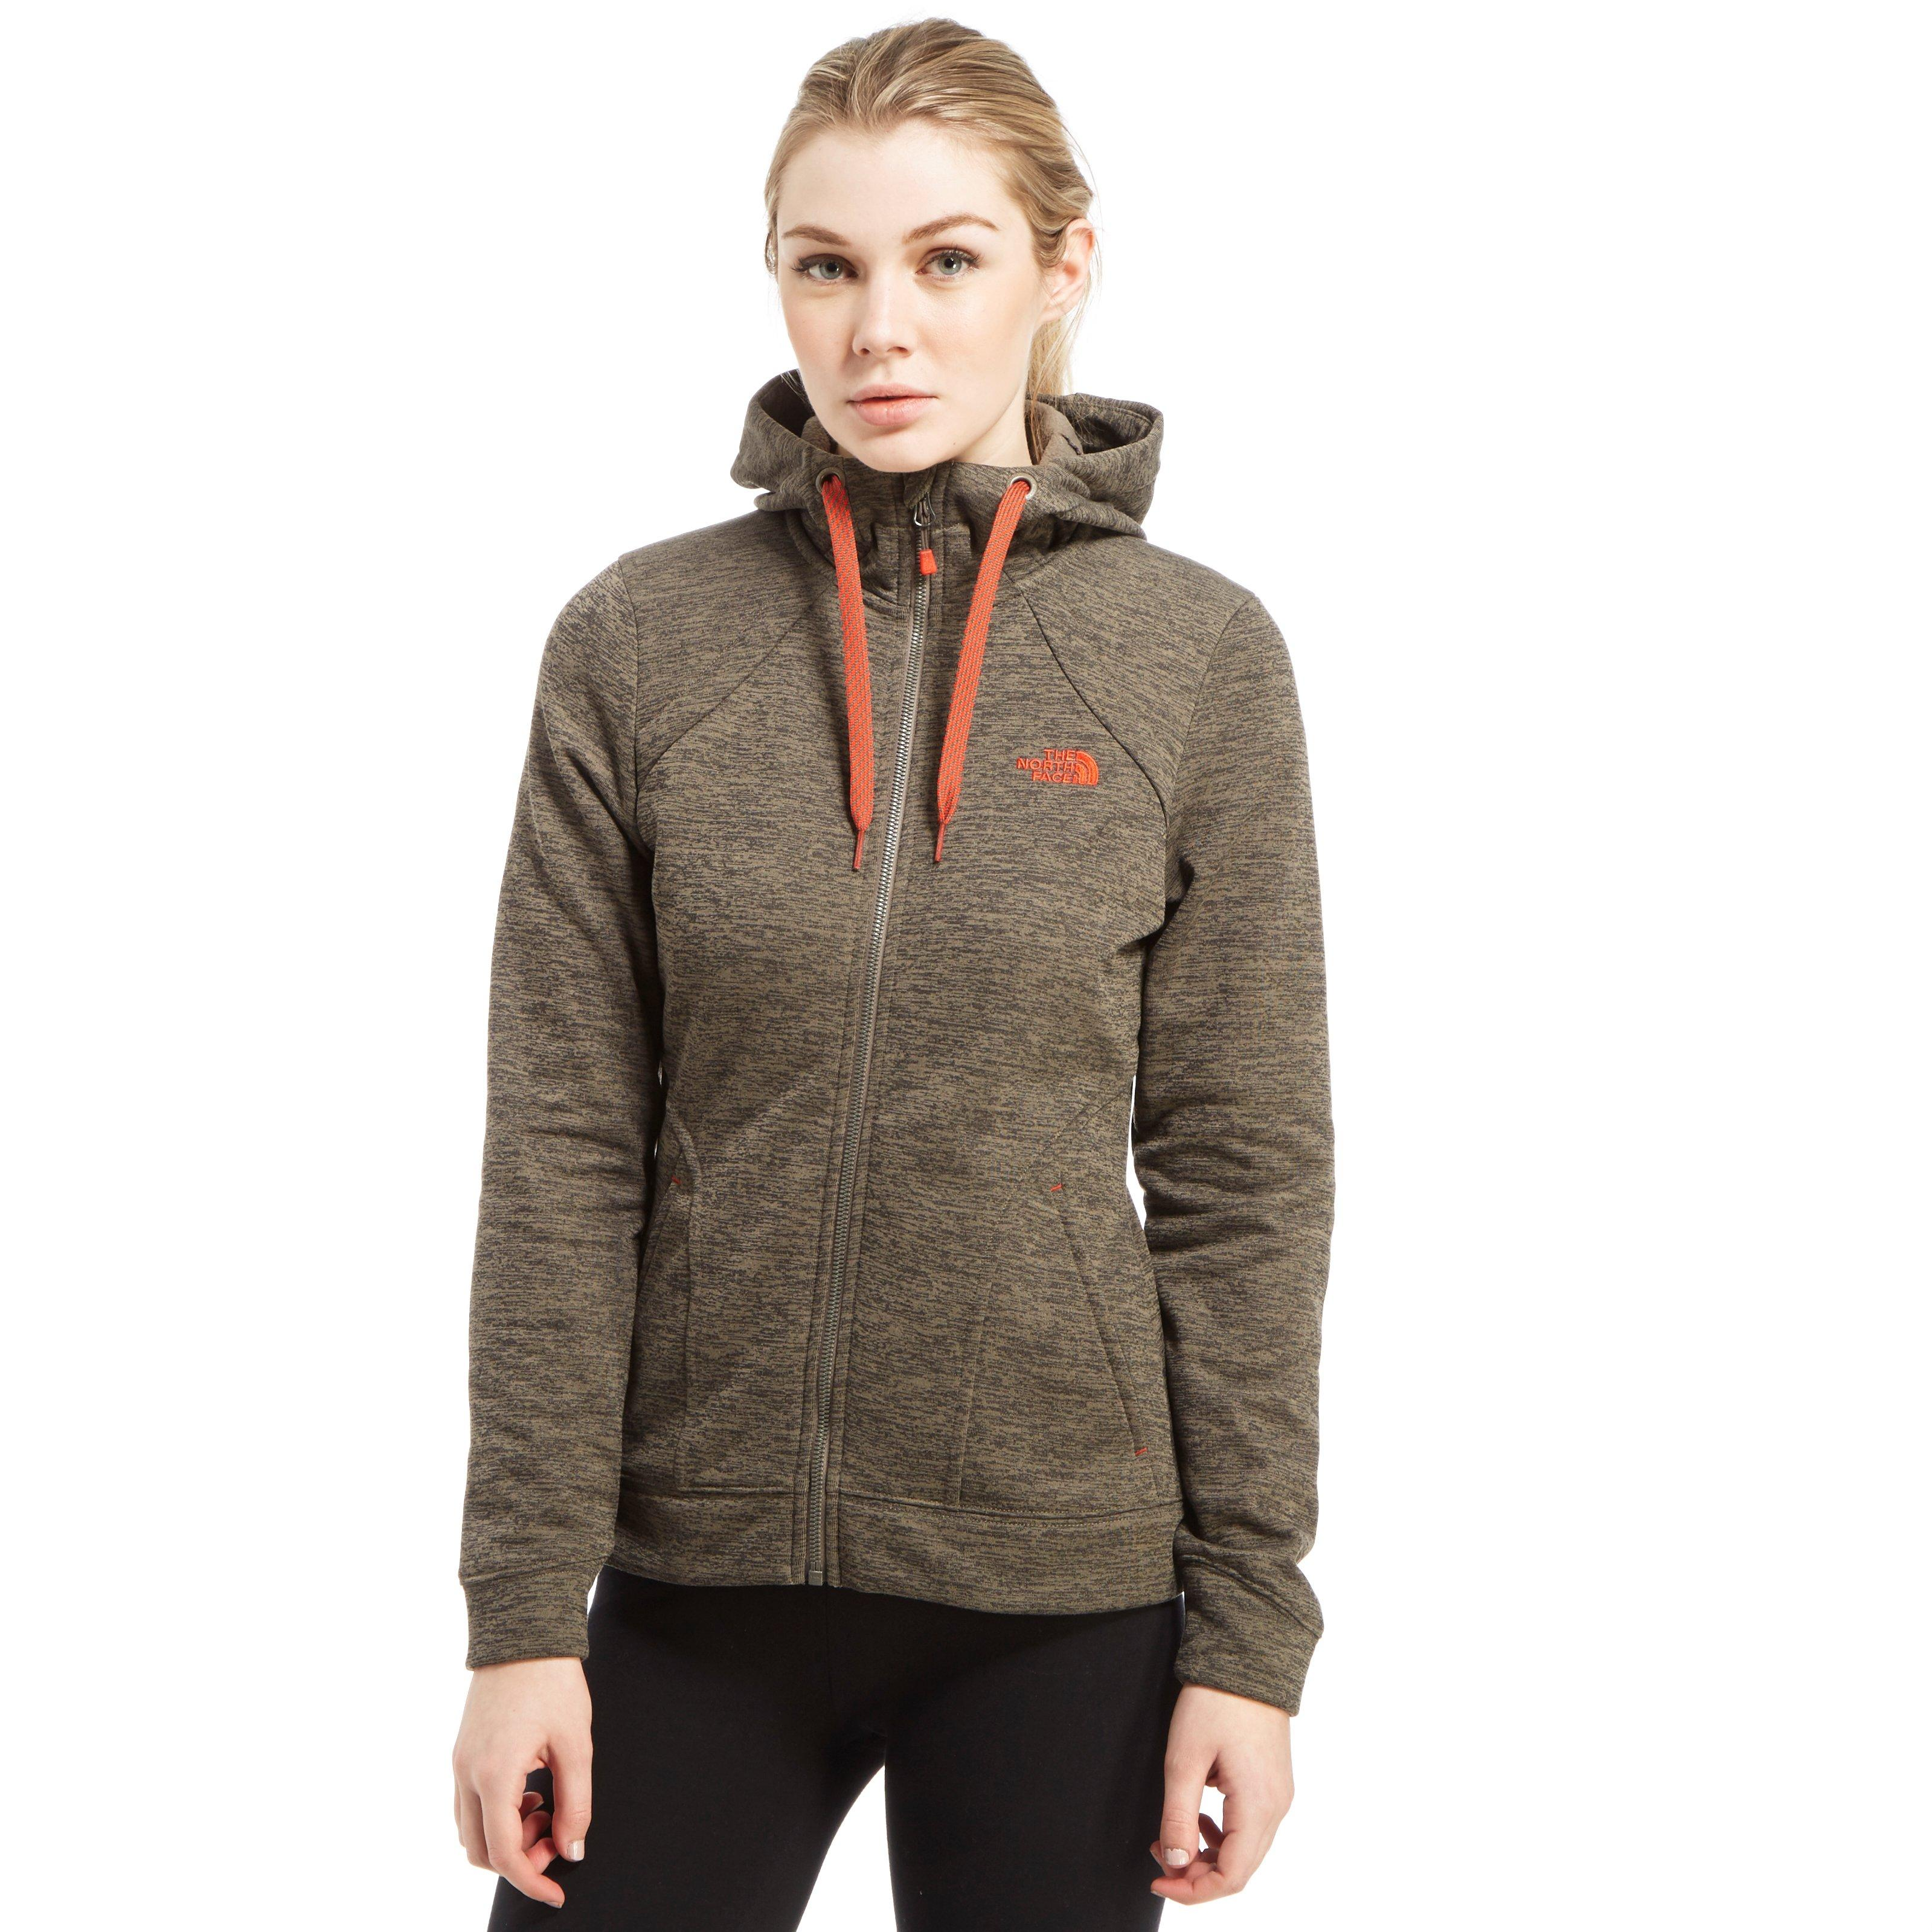 North face hoodies for women